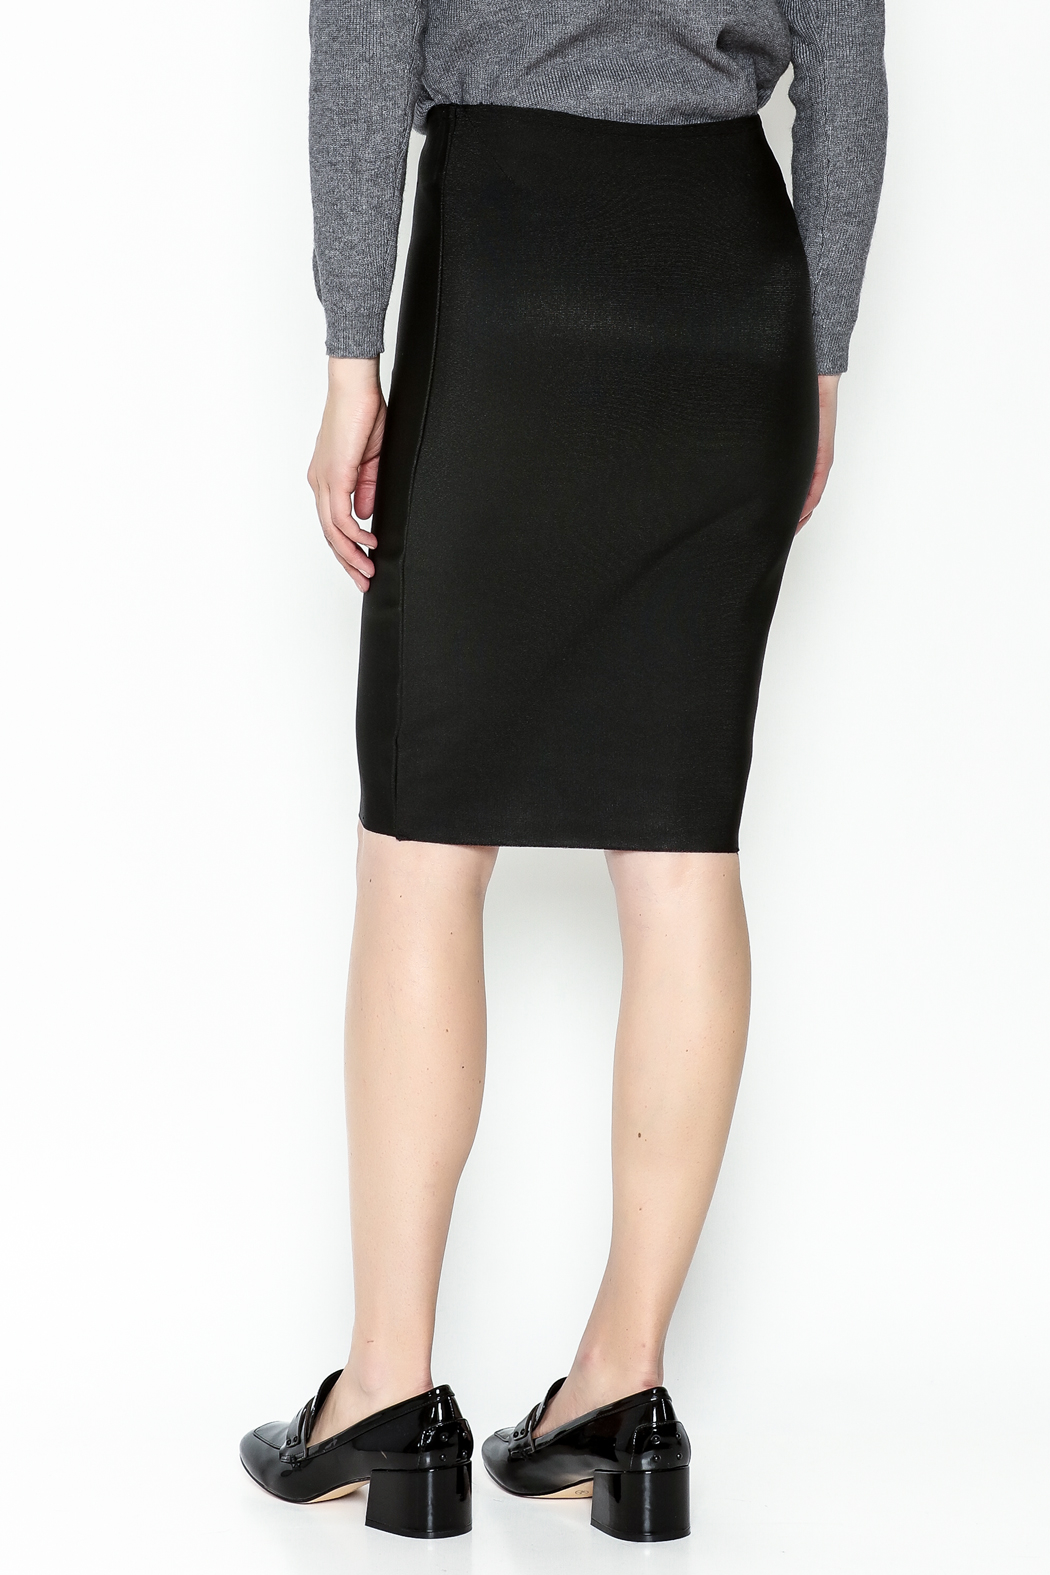 Wow Couture Bandage Skirt - Back Cropped Image